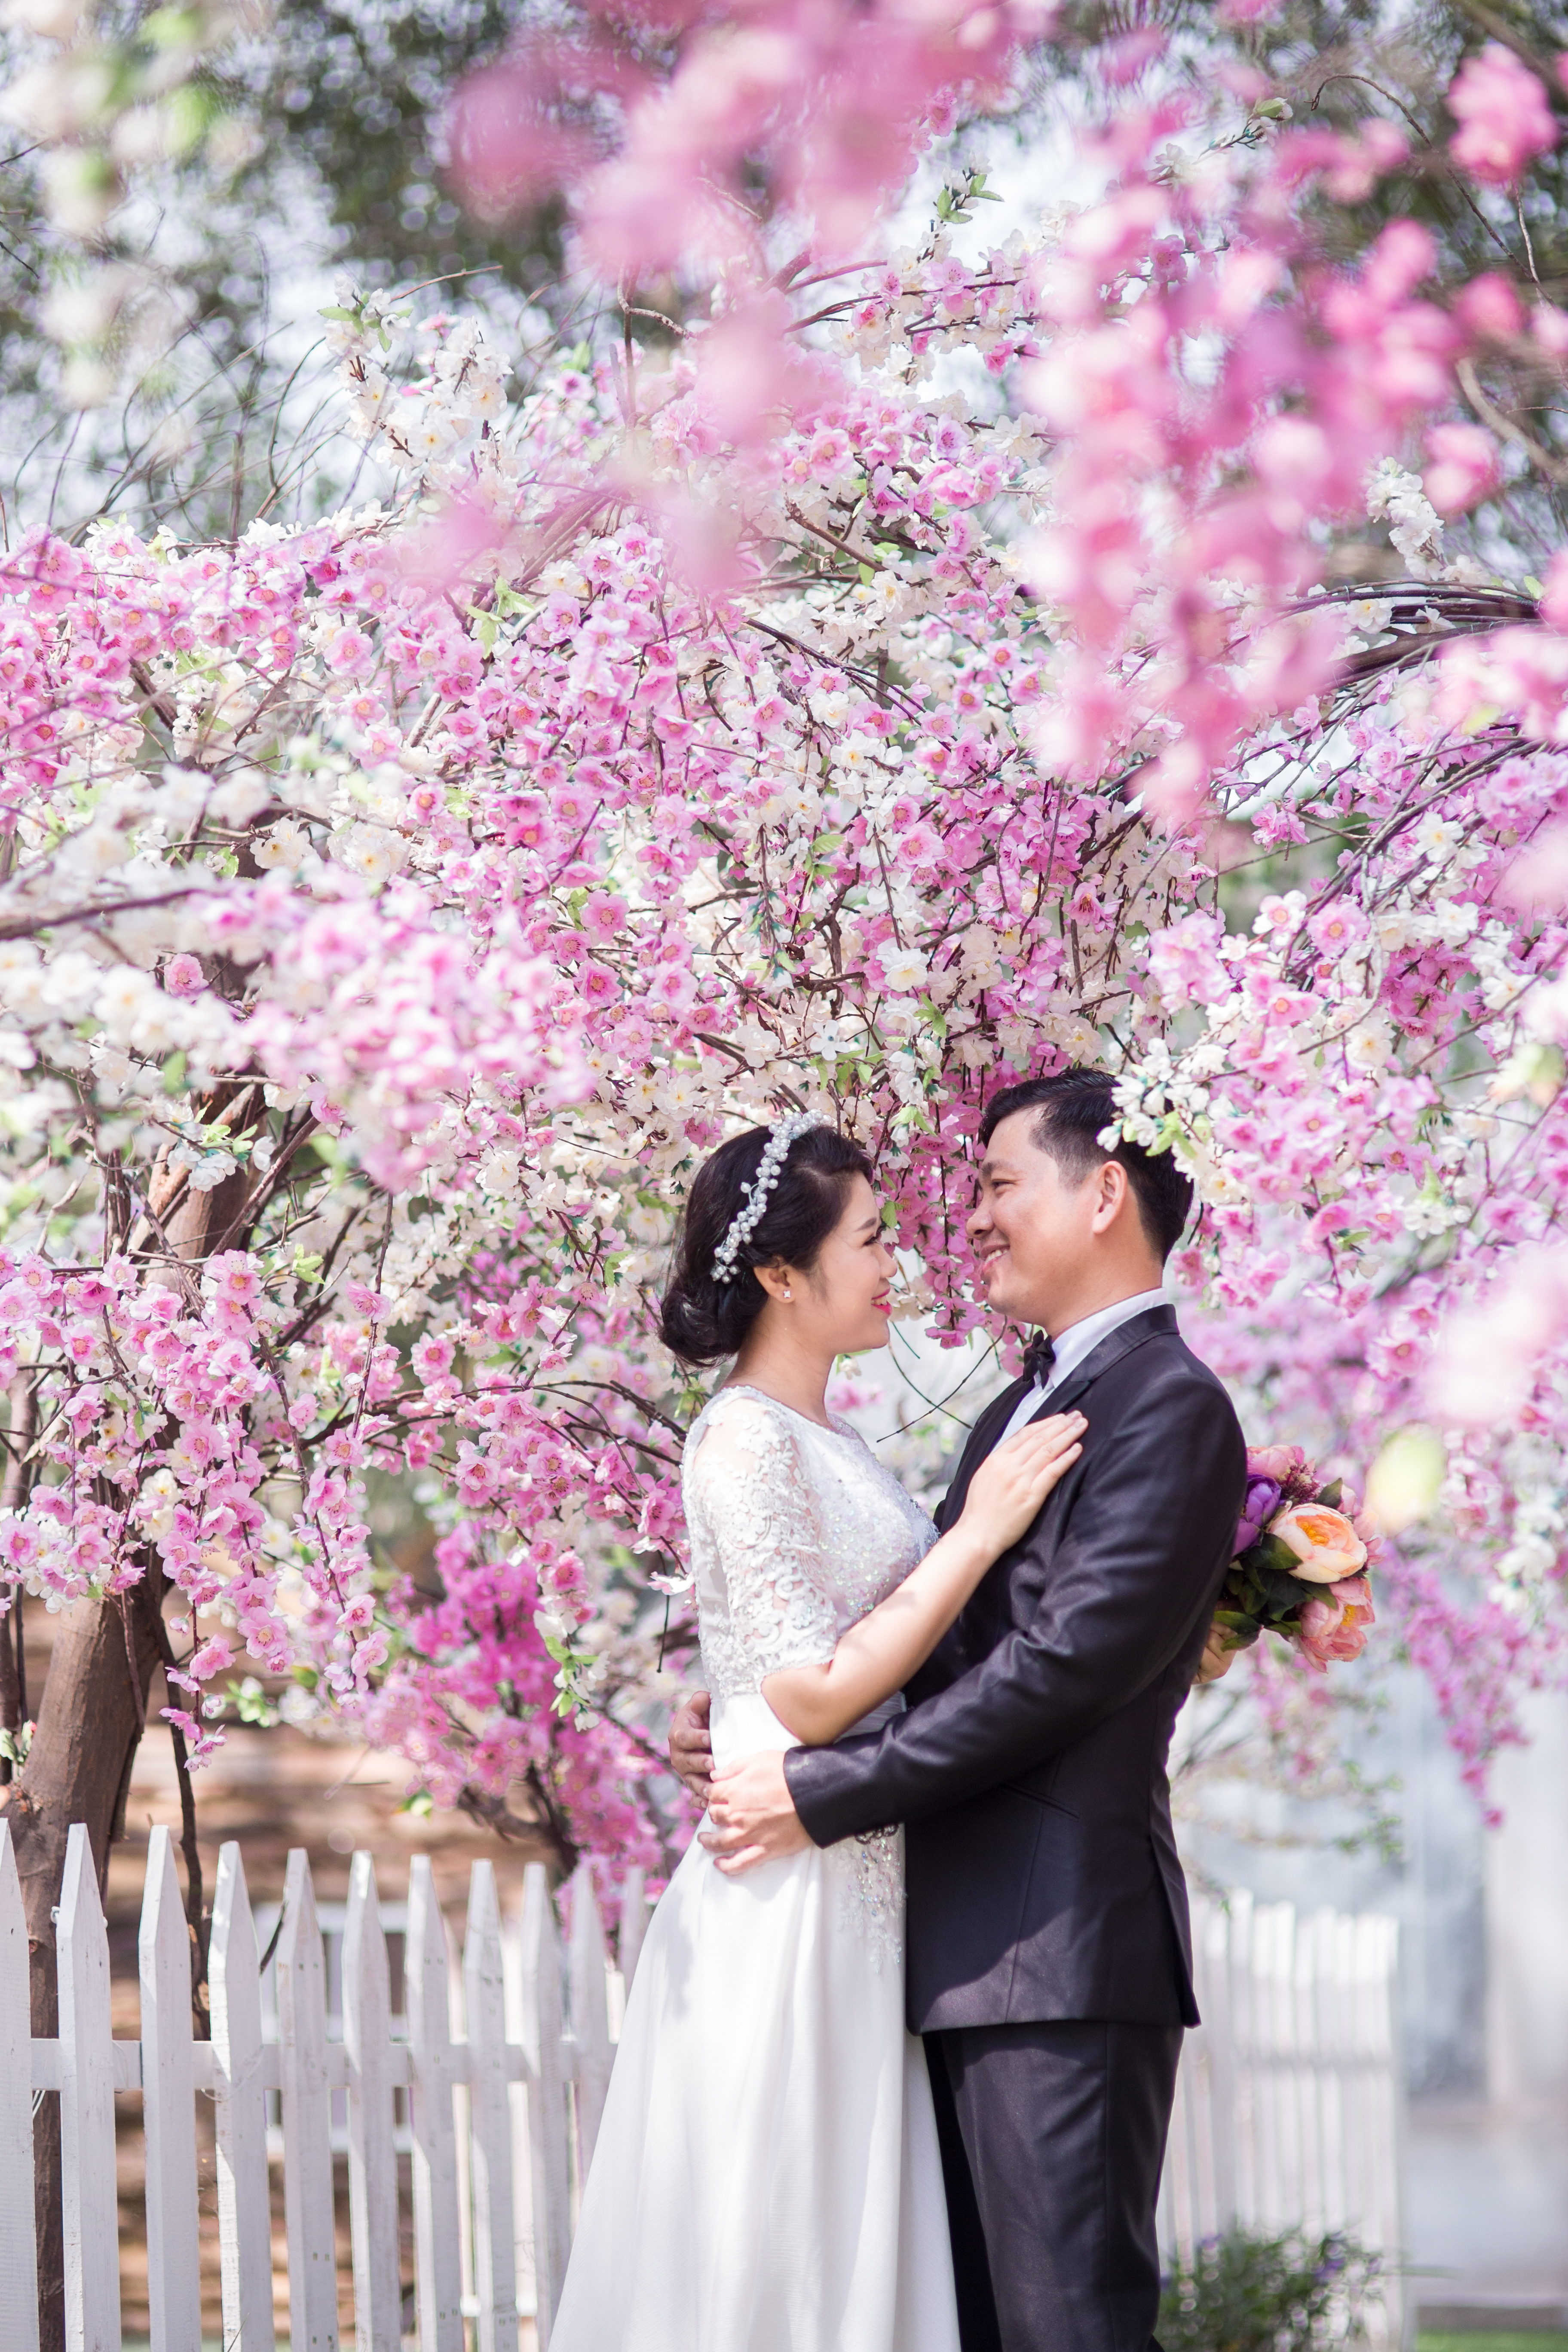 Wedding Couple Under Pink Cherry Blossoms